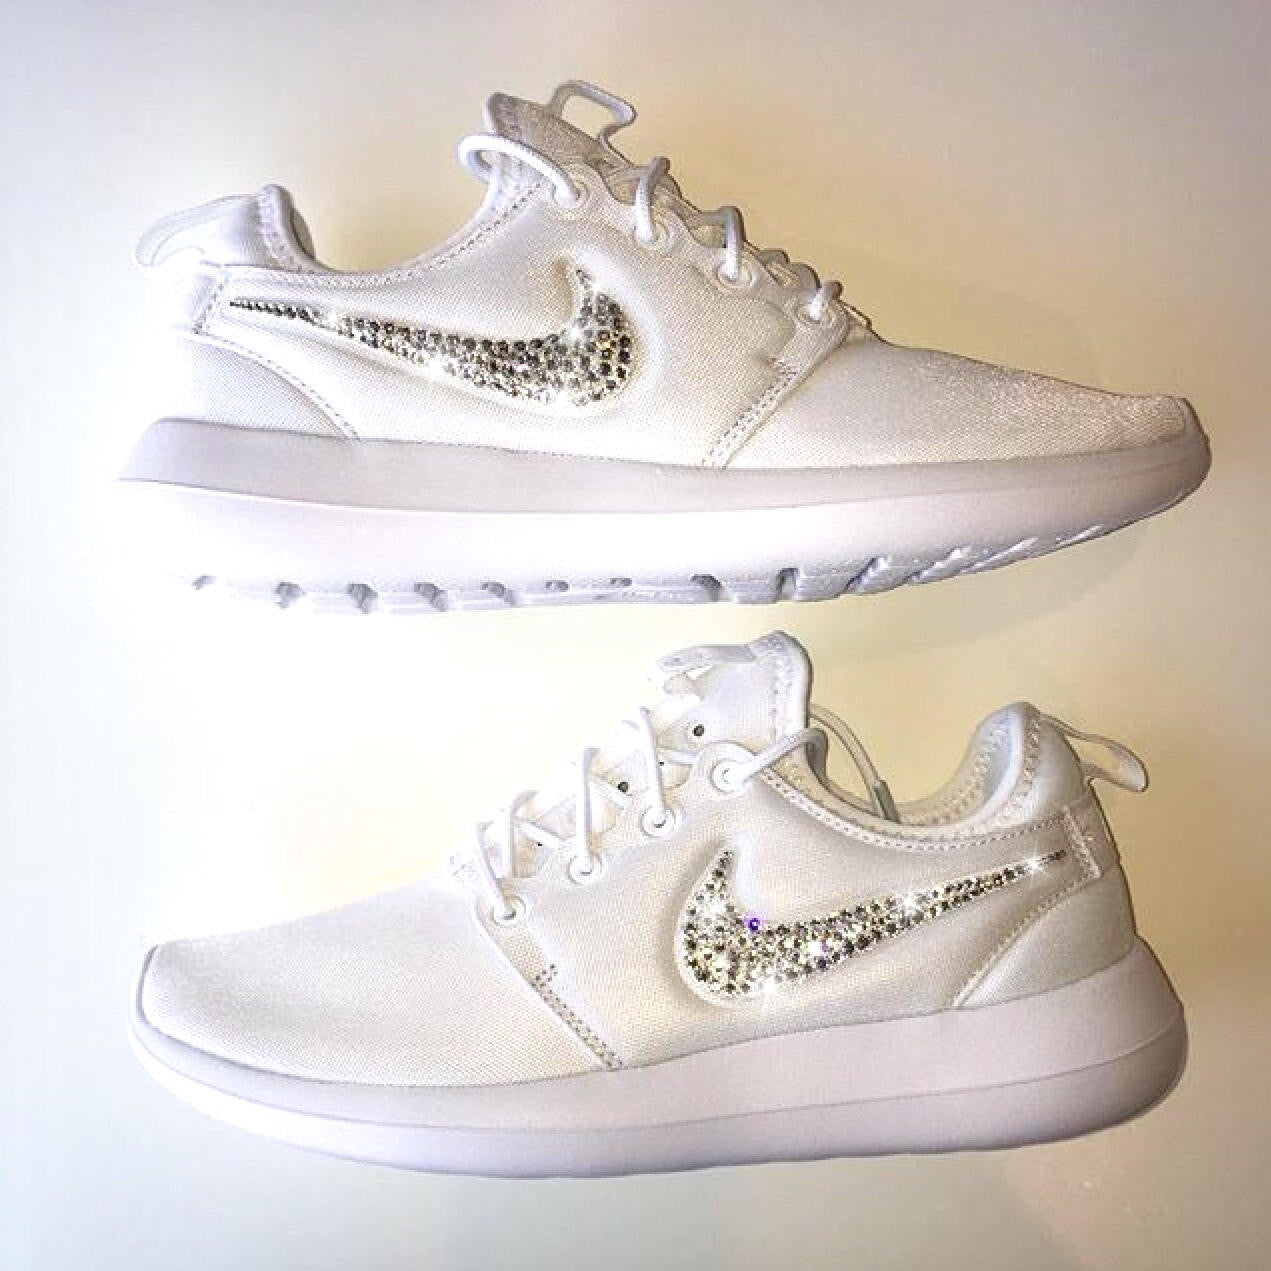 ... Bling Nike Roshe Two Shoes with Swarovski Crystals   White   Bedazzled  Authentic Swarovski Crystal Rhinestones ... 285d002b61f1